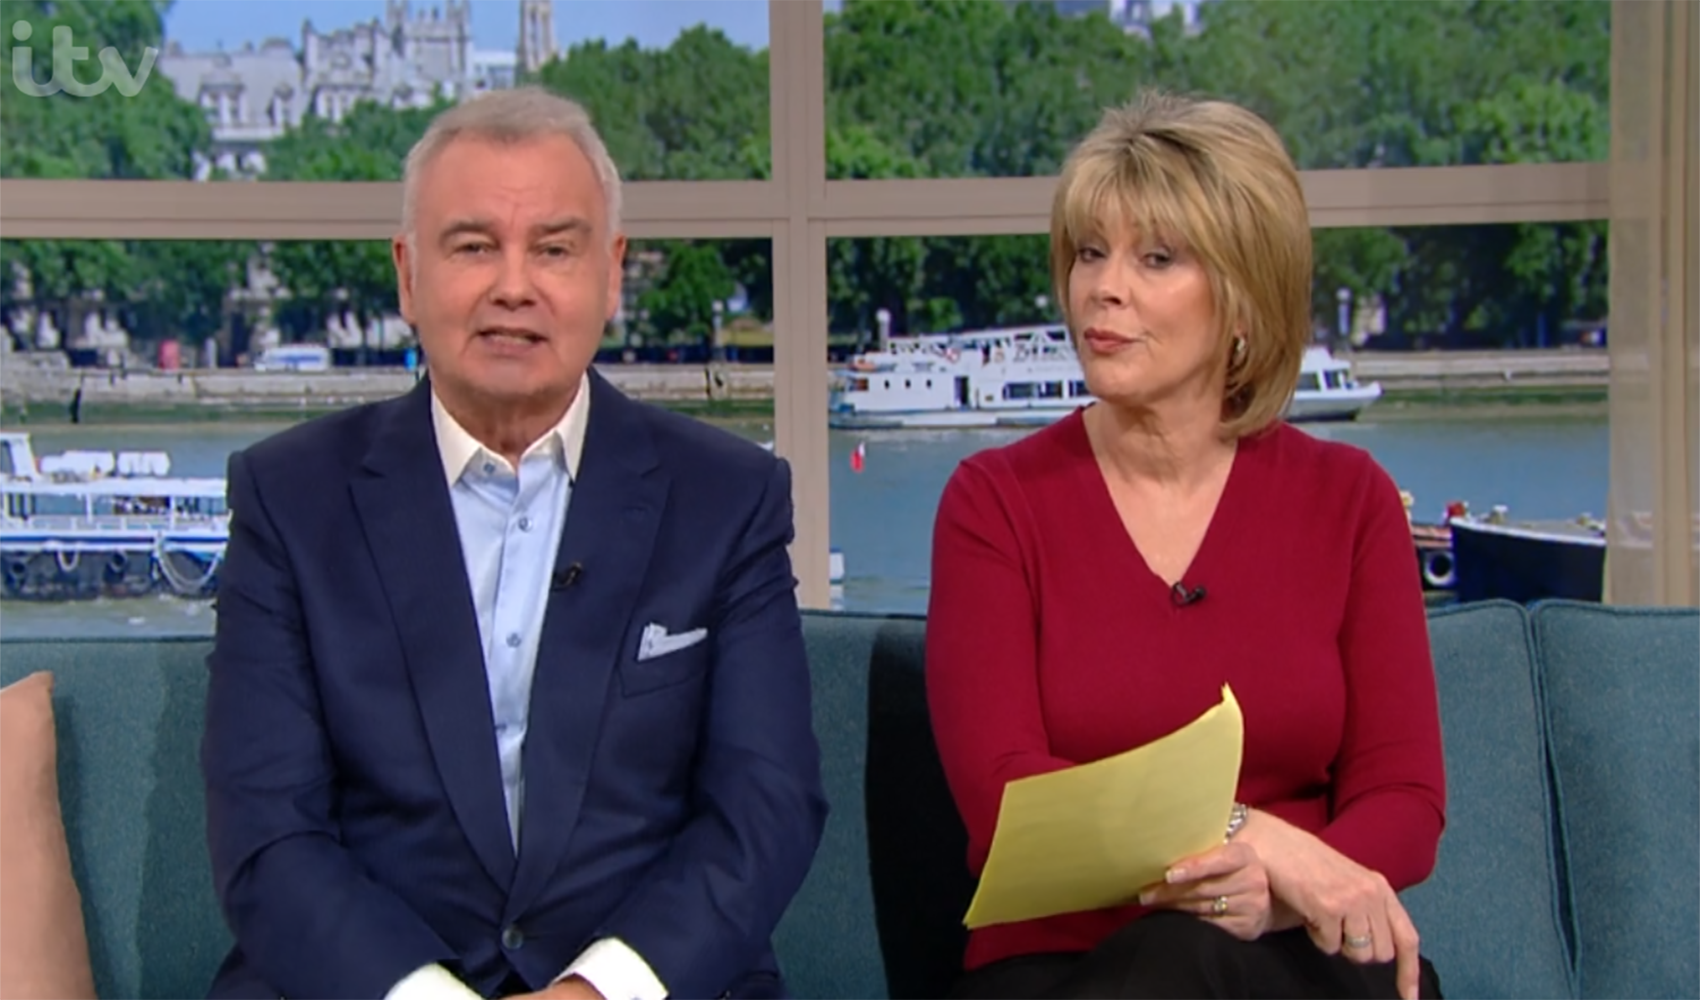 Eamonn Holmes says Piers Morgan 'scared' anxious Ruth Langsford with coronavirus remarks